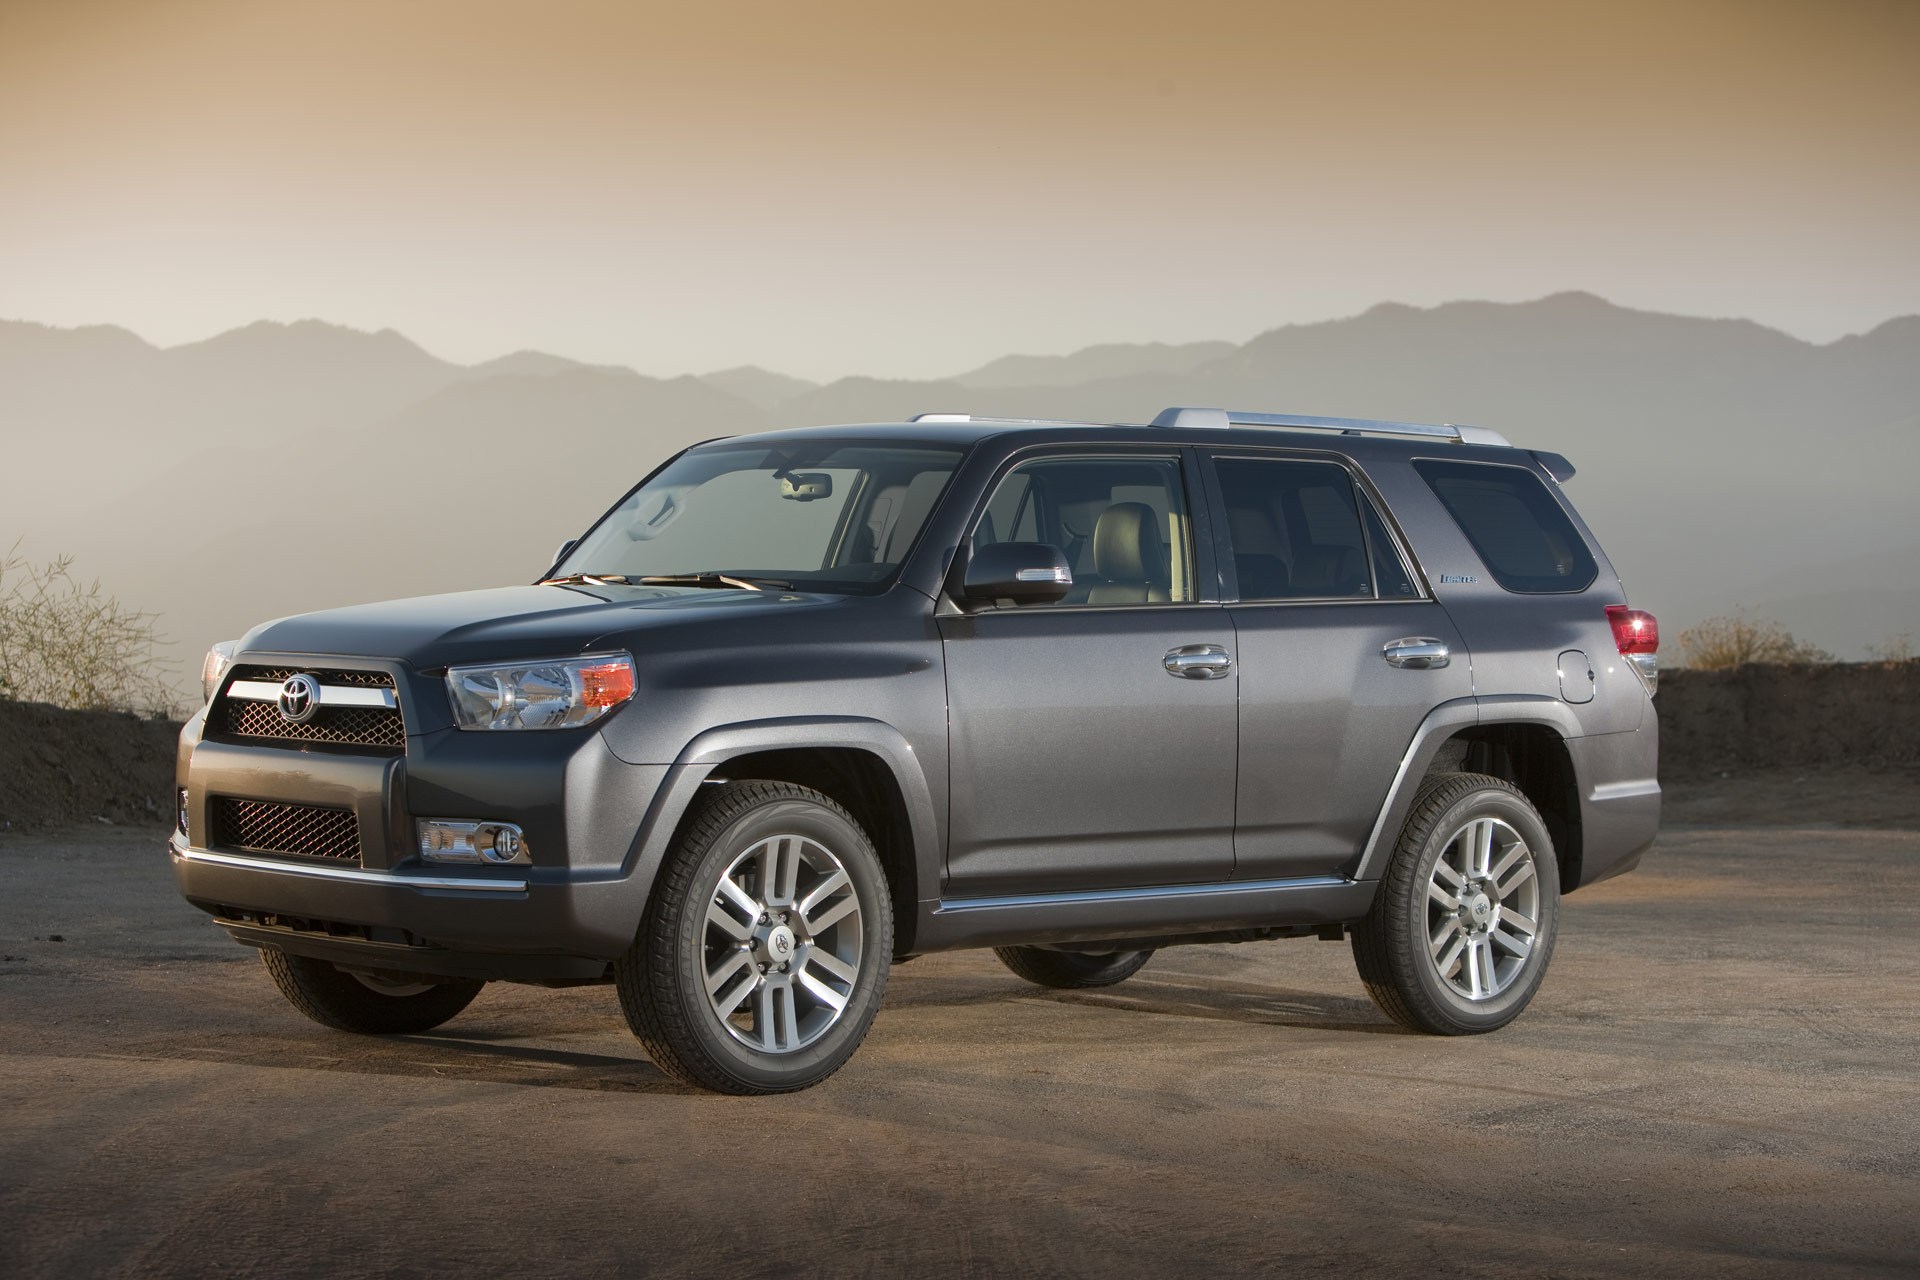 2013 toyota 4runner. Black Bedroom Furniture Sets. Home Design Ideas